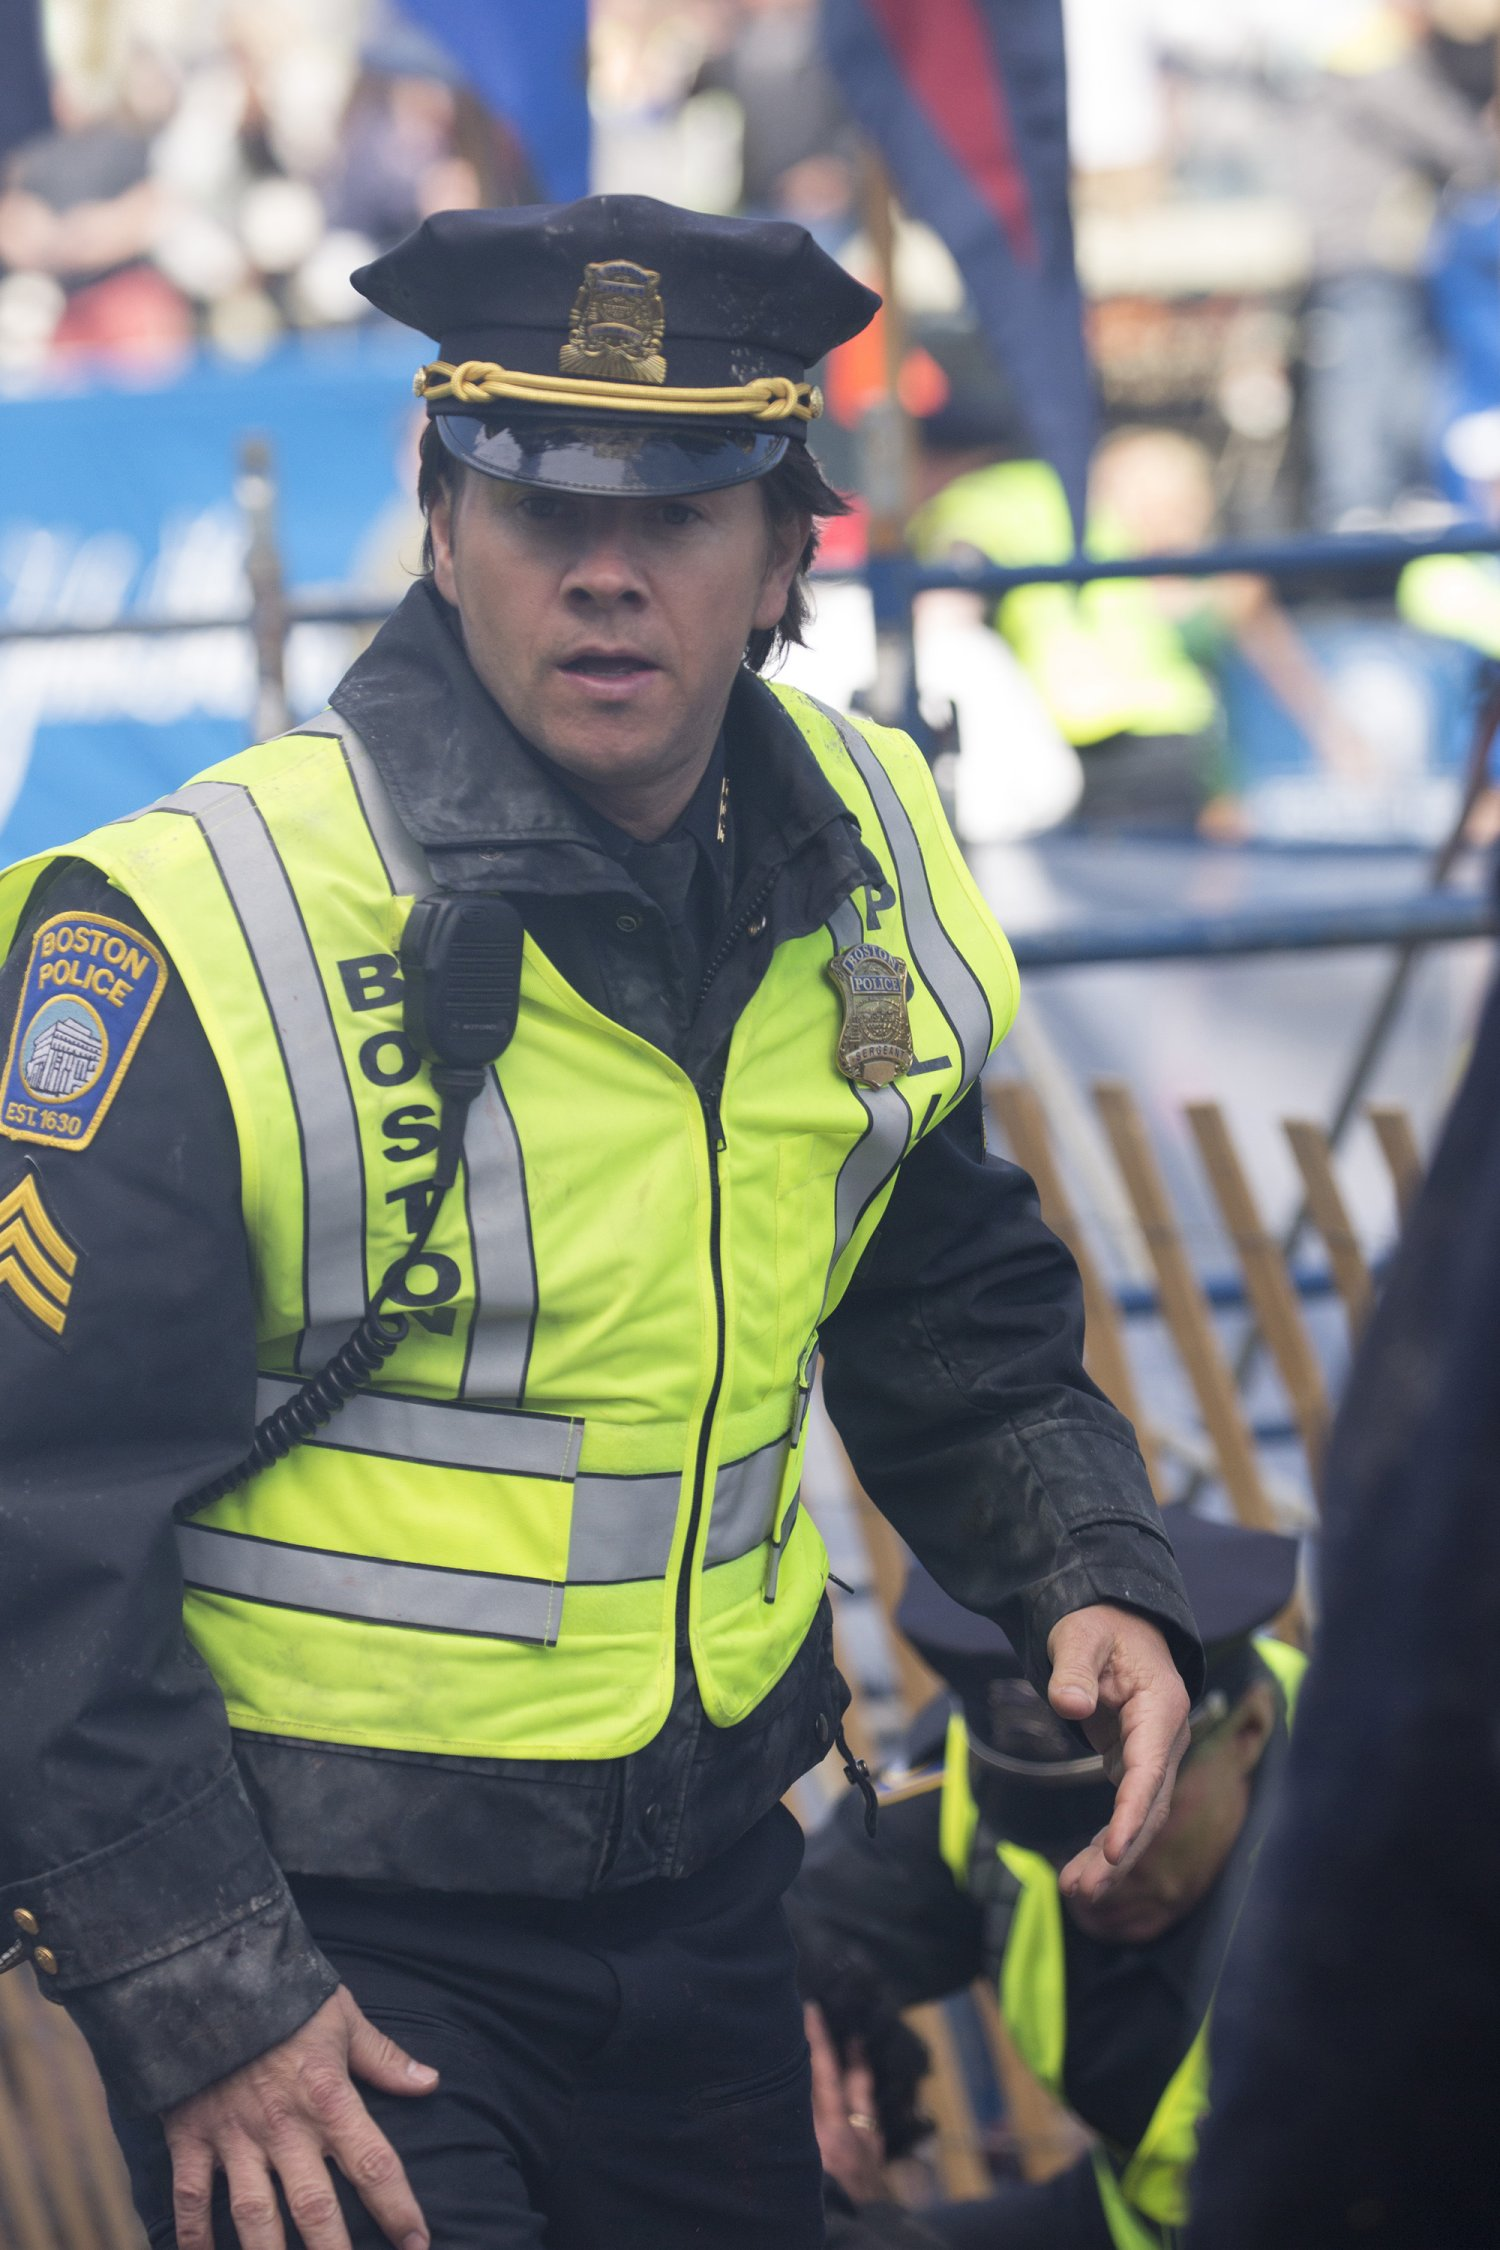 Patriots Day – Mark Wahlberg first look image